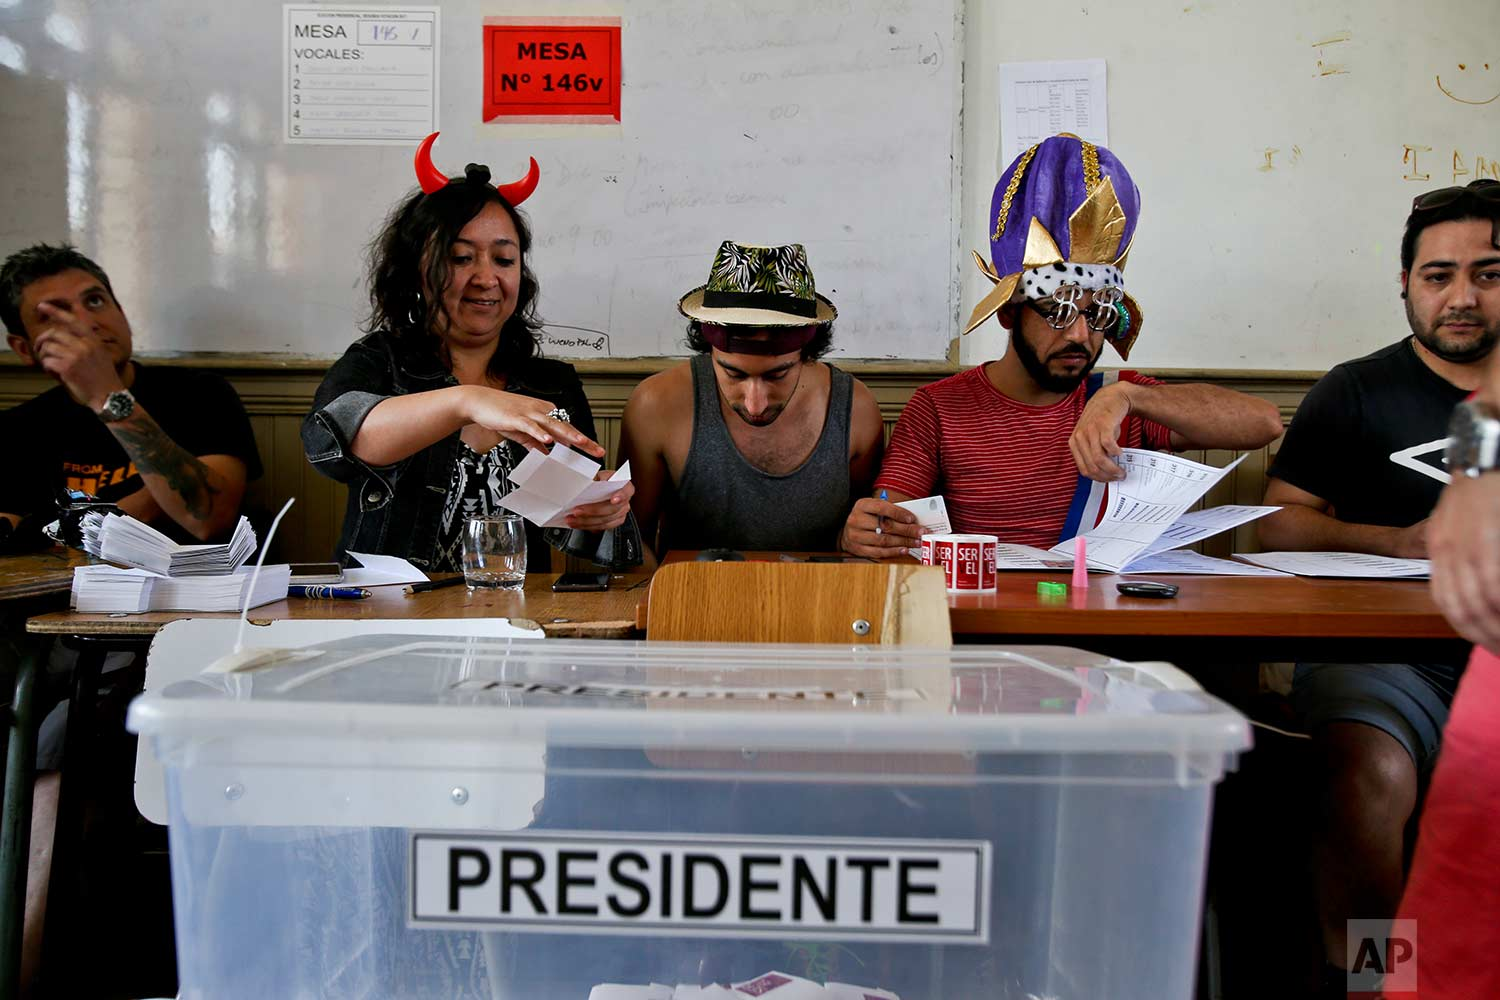 Electoral workers sport costumes during the presidential runoff election in Santiago, Chile, Sunday, Dec. 17, 2017. Chileans will decide Sunday whether to swing the world's top copper-producing country to the right or maintain its center-left path in a fiercely contested election. (AP Photo/Esteban Felix)